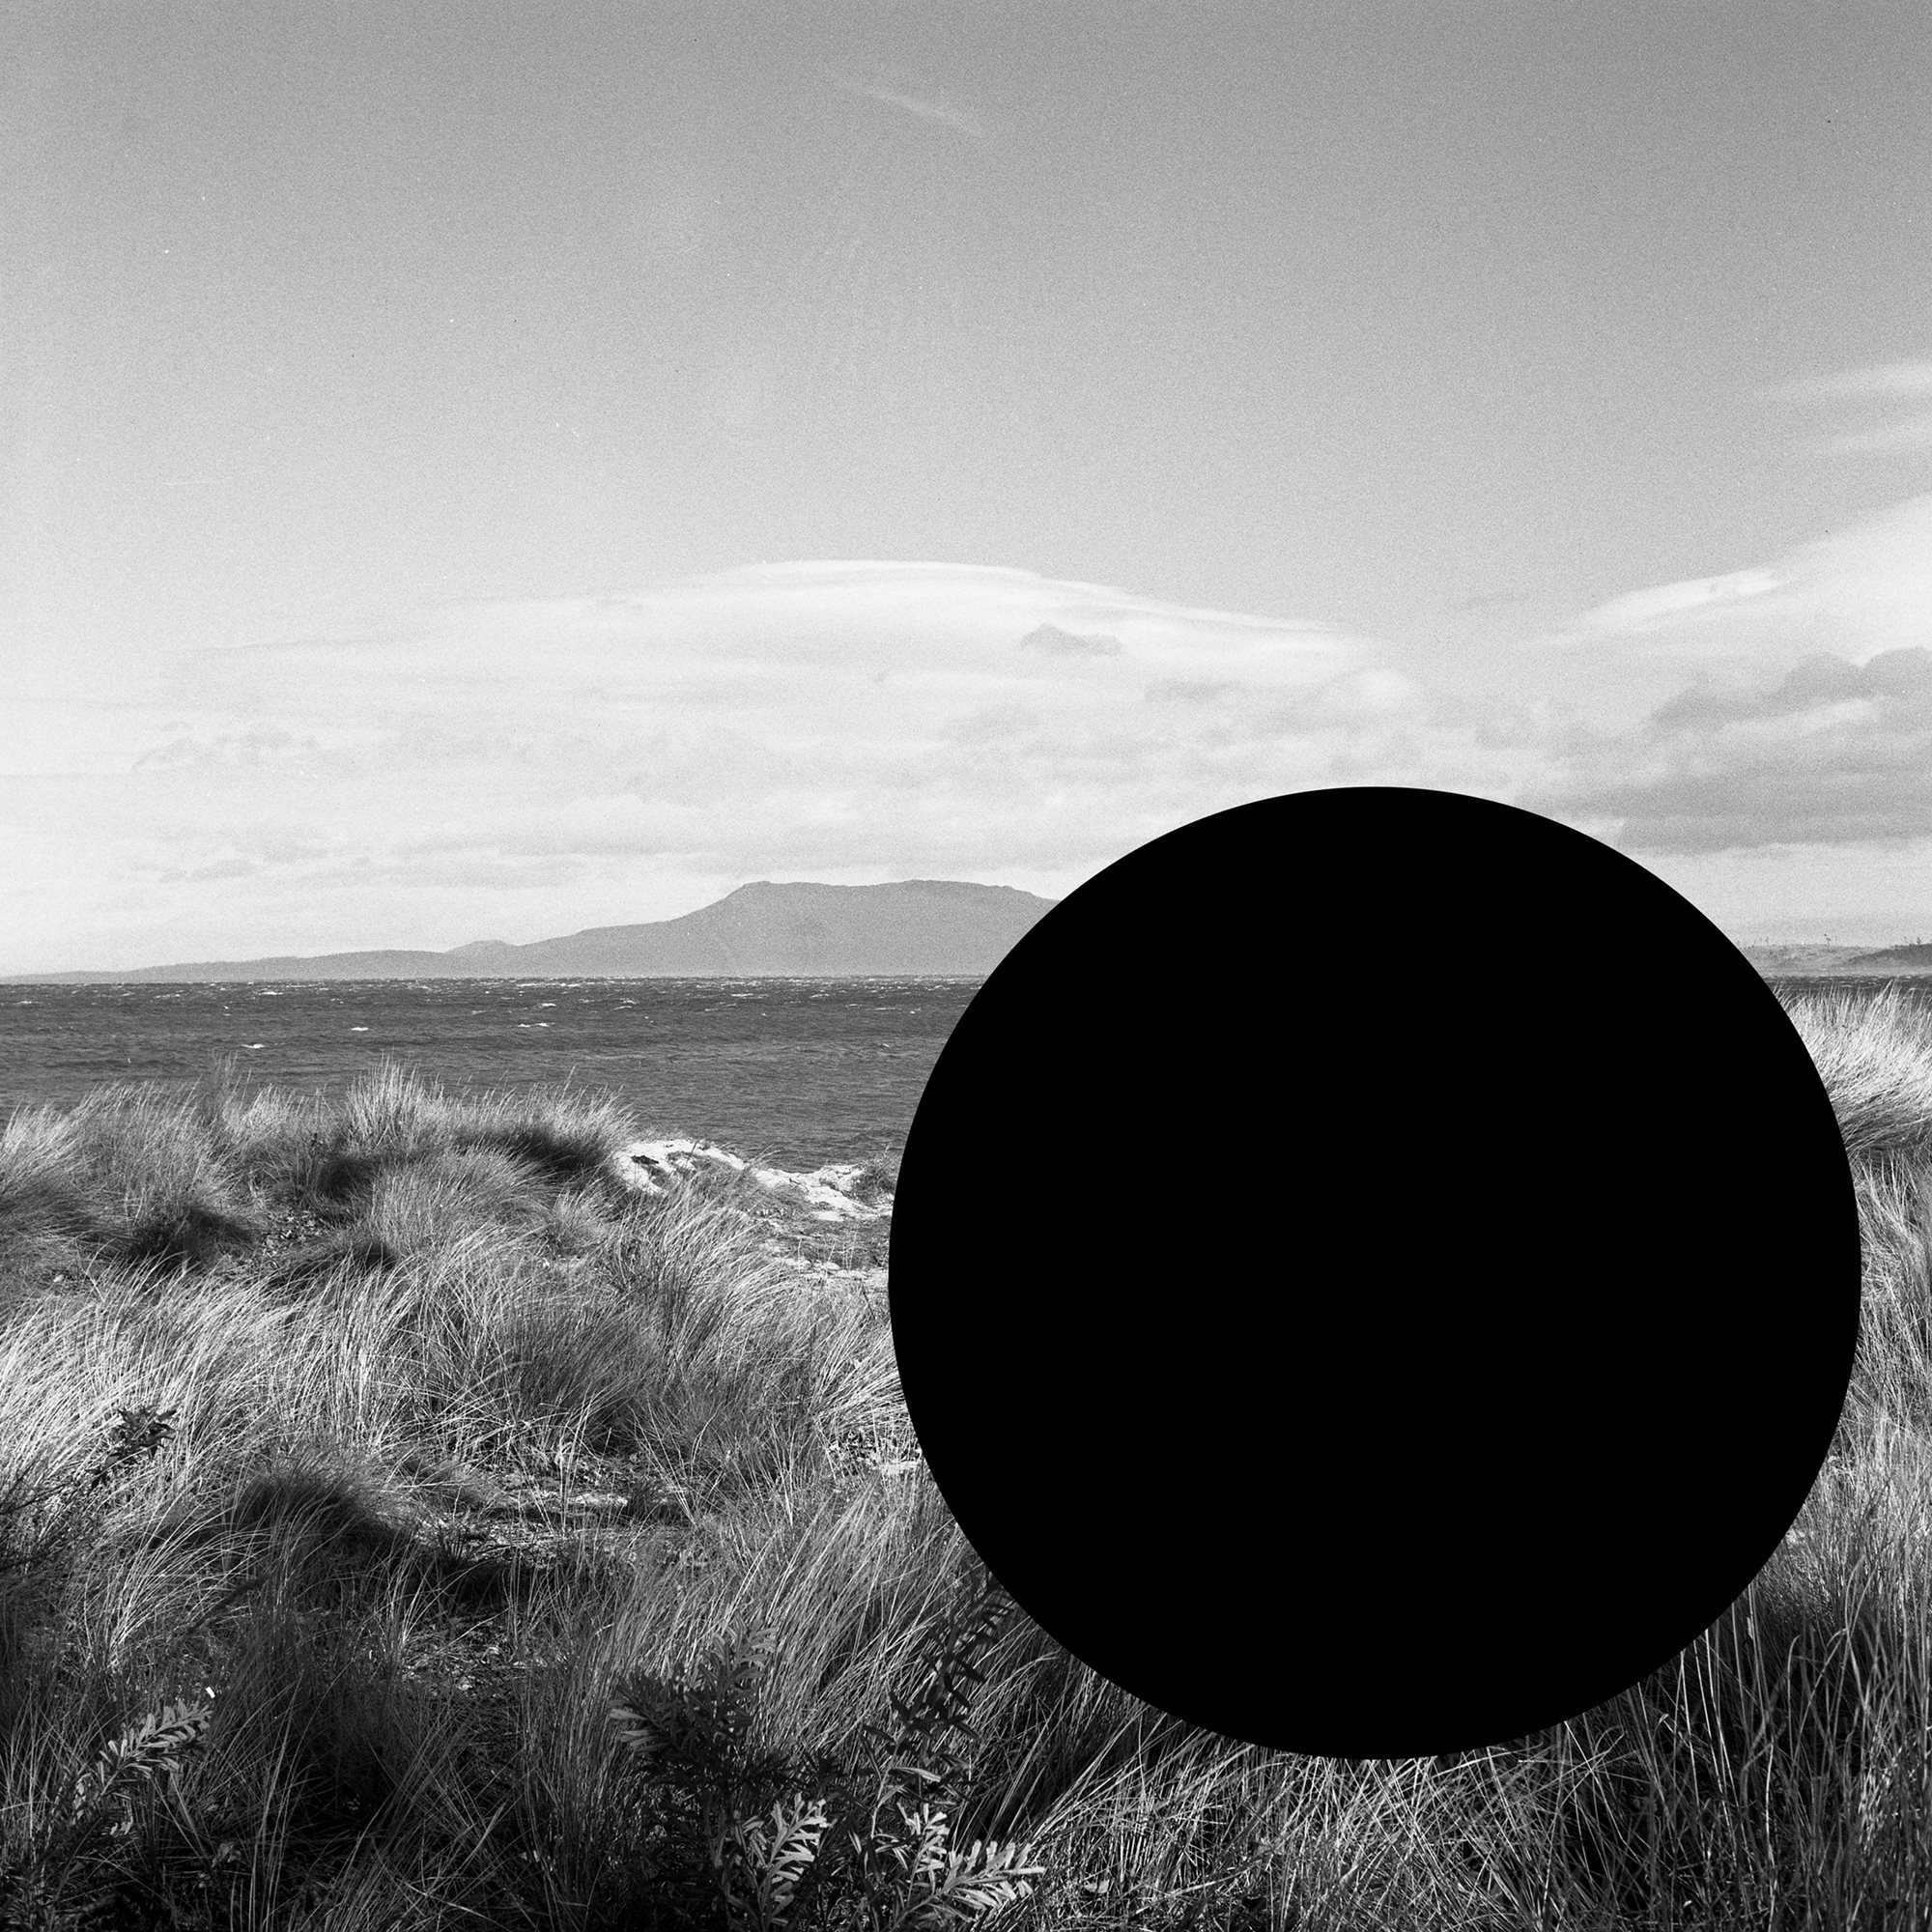 James Tylor, '(Deleted Scenes) From an Untouched Landscape #7 Knocklofty Reserve, West Hobart, Palawa Land', 2013, Inkjet print on hahnemühle paper with hole removed to a black velvet void, 63 x 63 cm framed. Courtesy the artist and UTS Art Collection